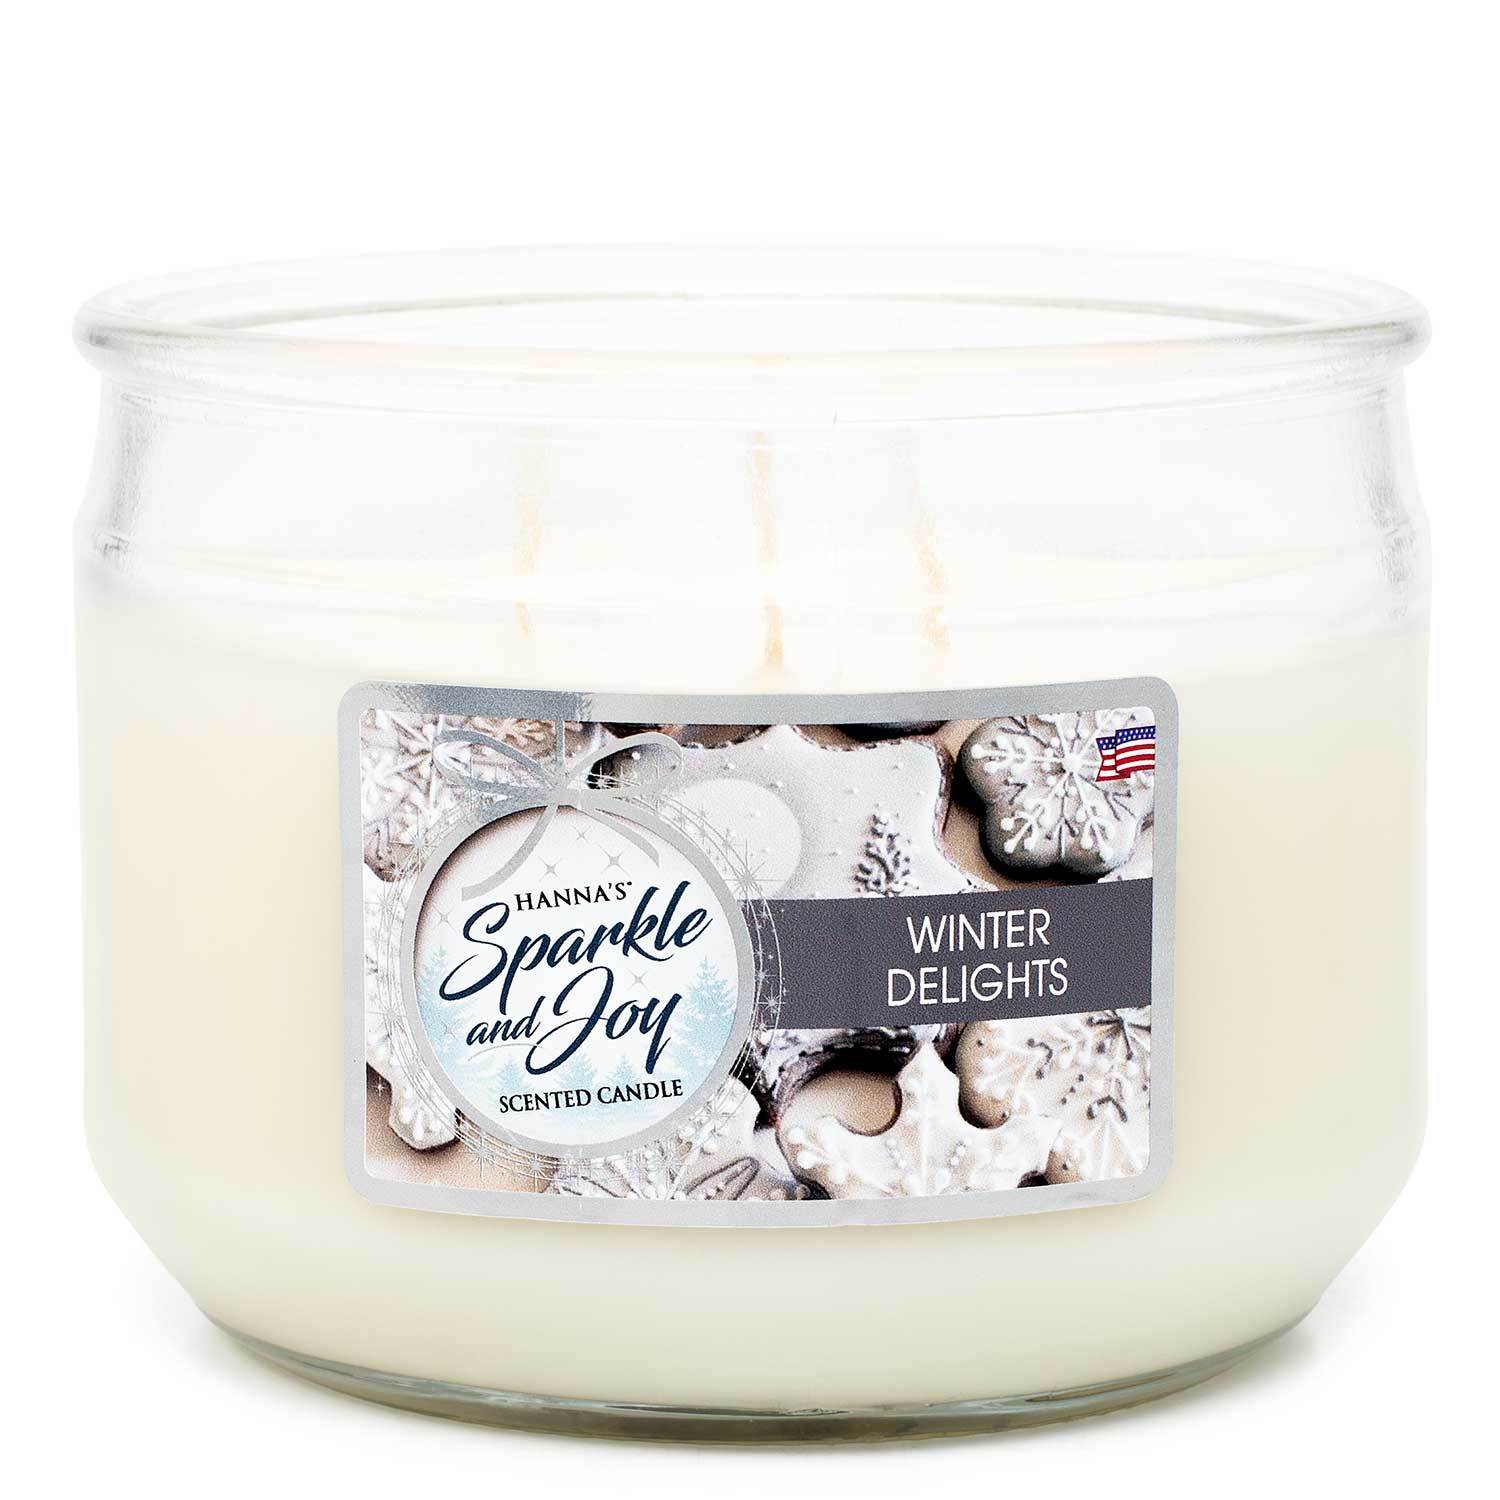 Winter Delights Scented 3 wick Candle - Candlemart.com